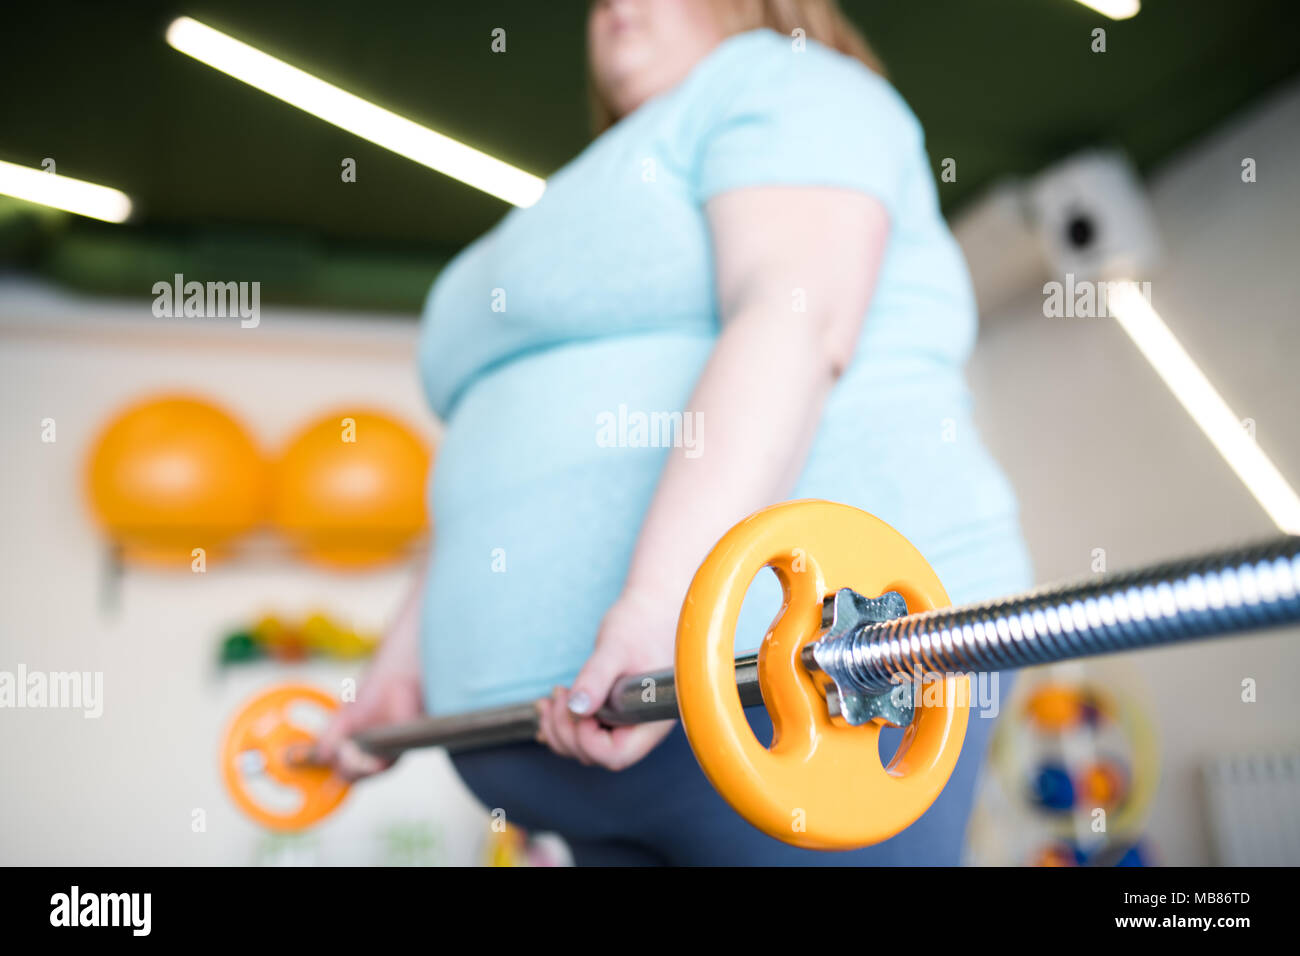 Overweight Woman Working Out with Barbell - Stock Image